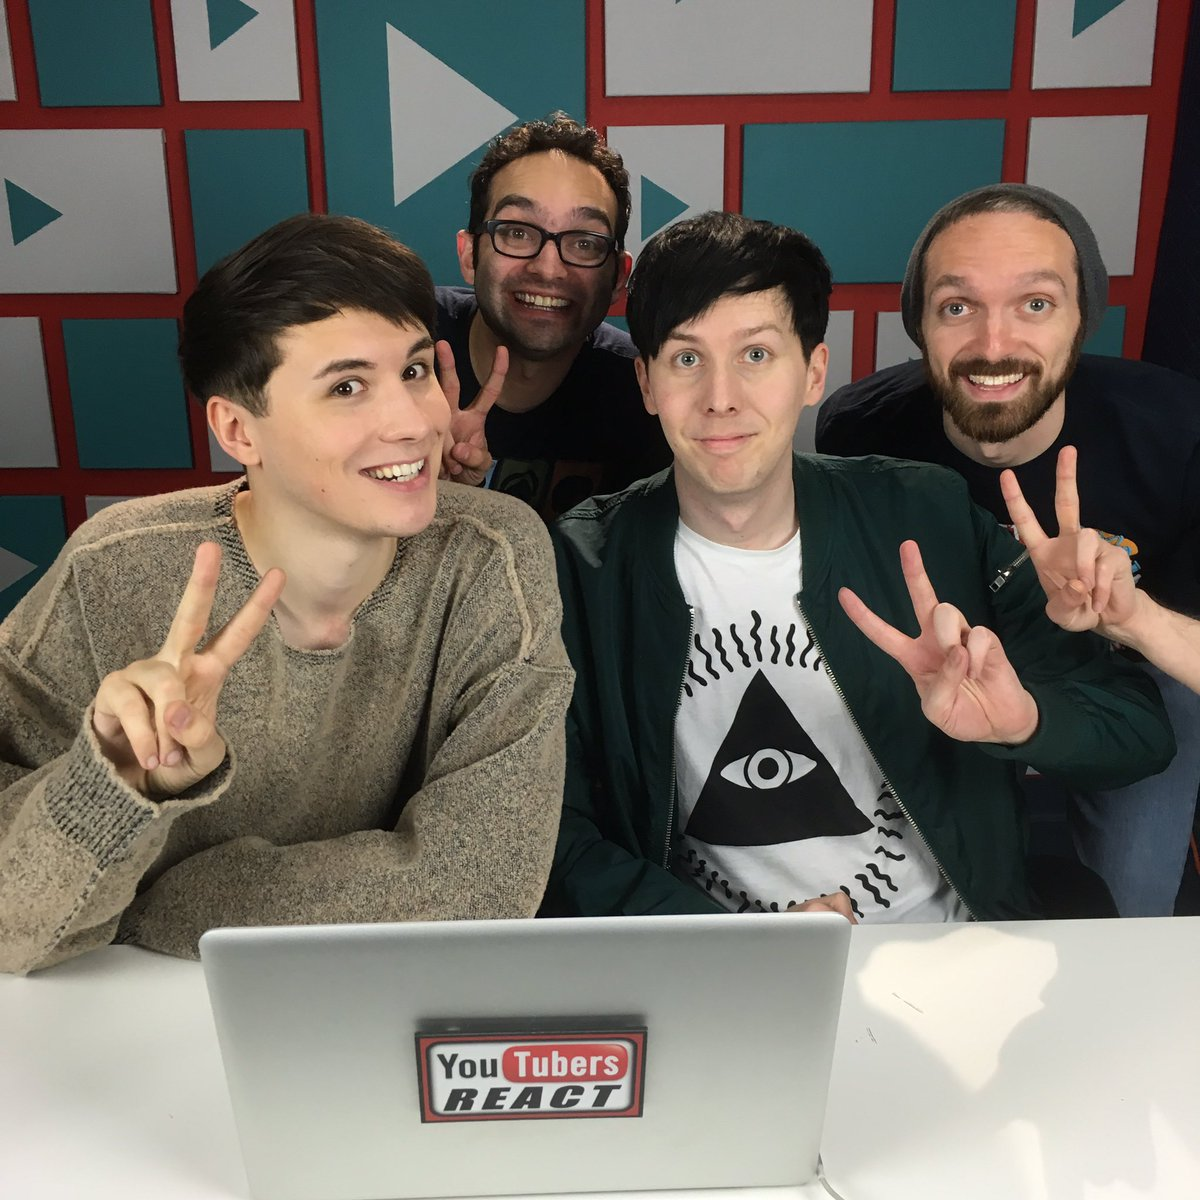 It's becoming our annual tradition - amazing to have @danisnotonfire and @AmazingPhil film with us today! https://t.co/sT2LCE0XRJ